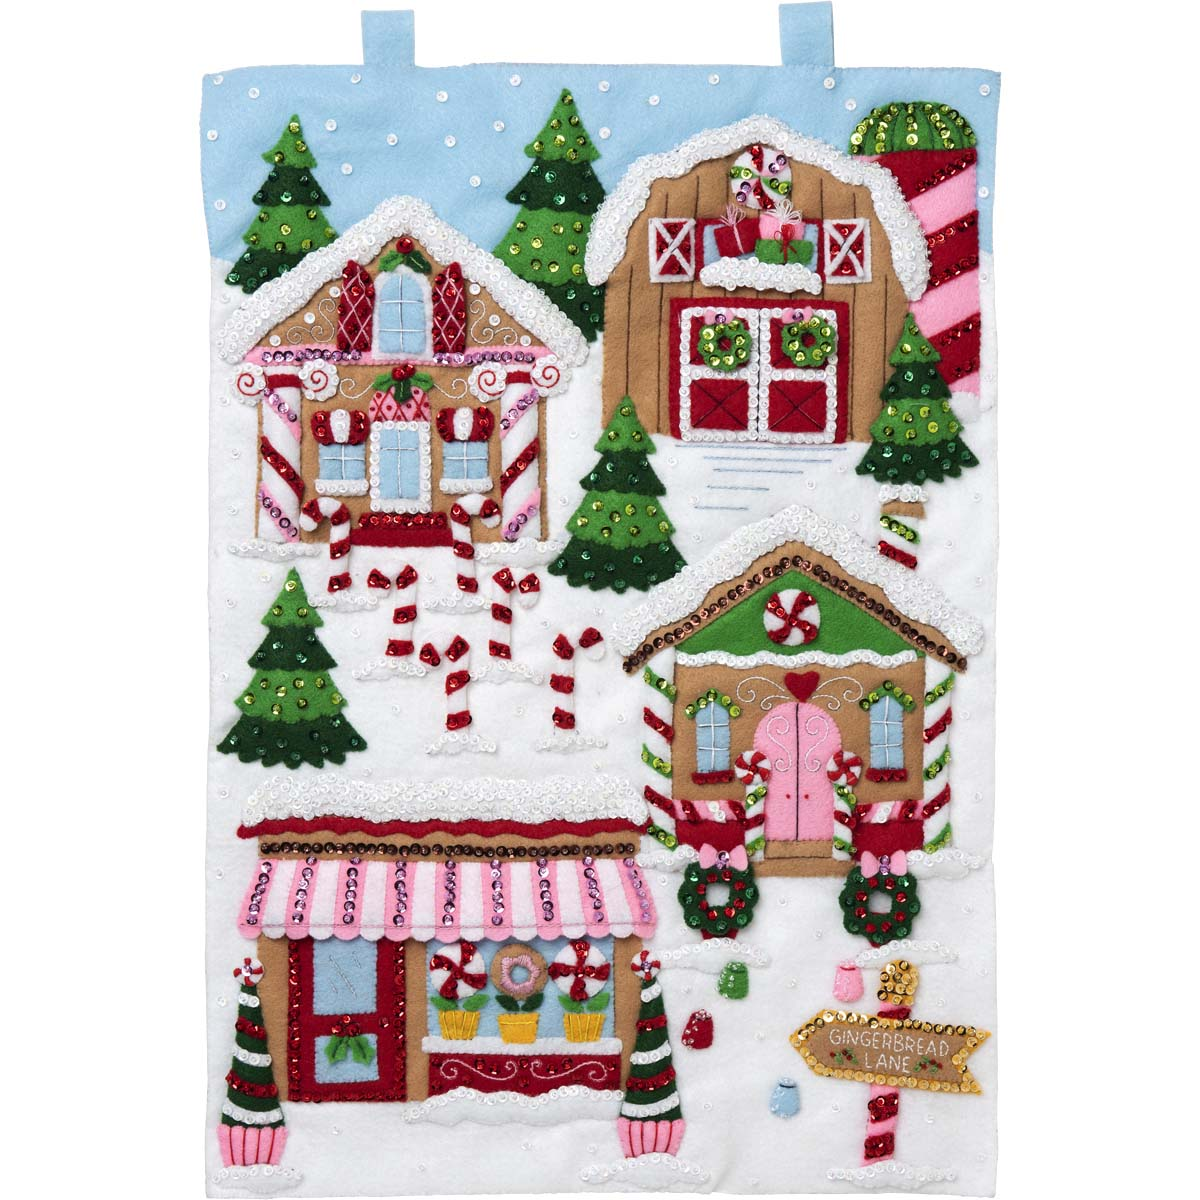 Bucilla ® Seasonal - Felt - Home Decor - Gingerbread Lane Wall Hanging - 89270E